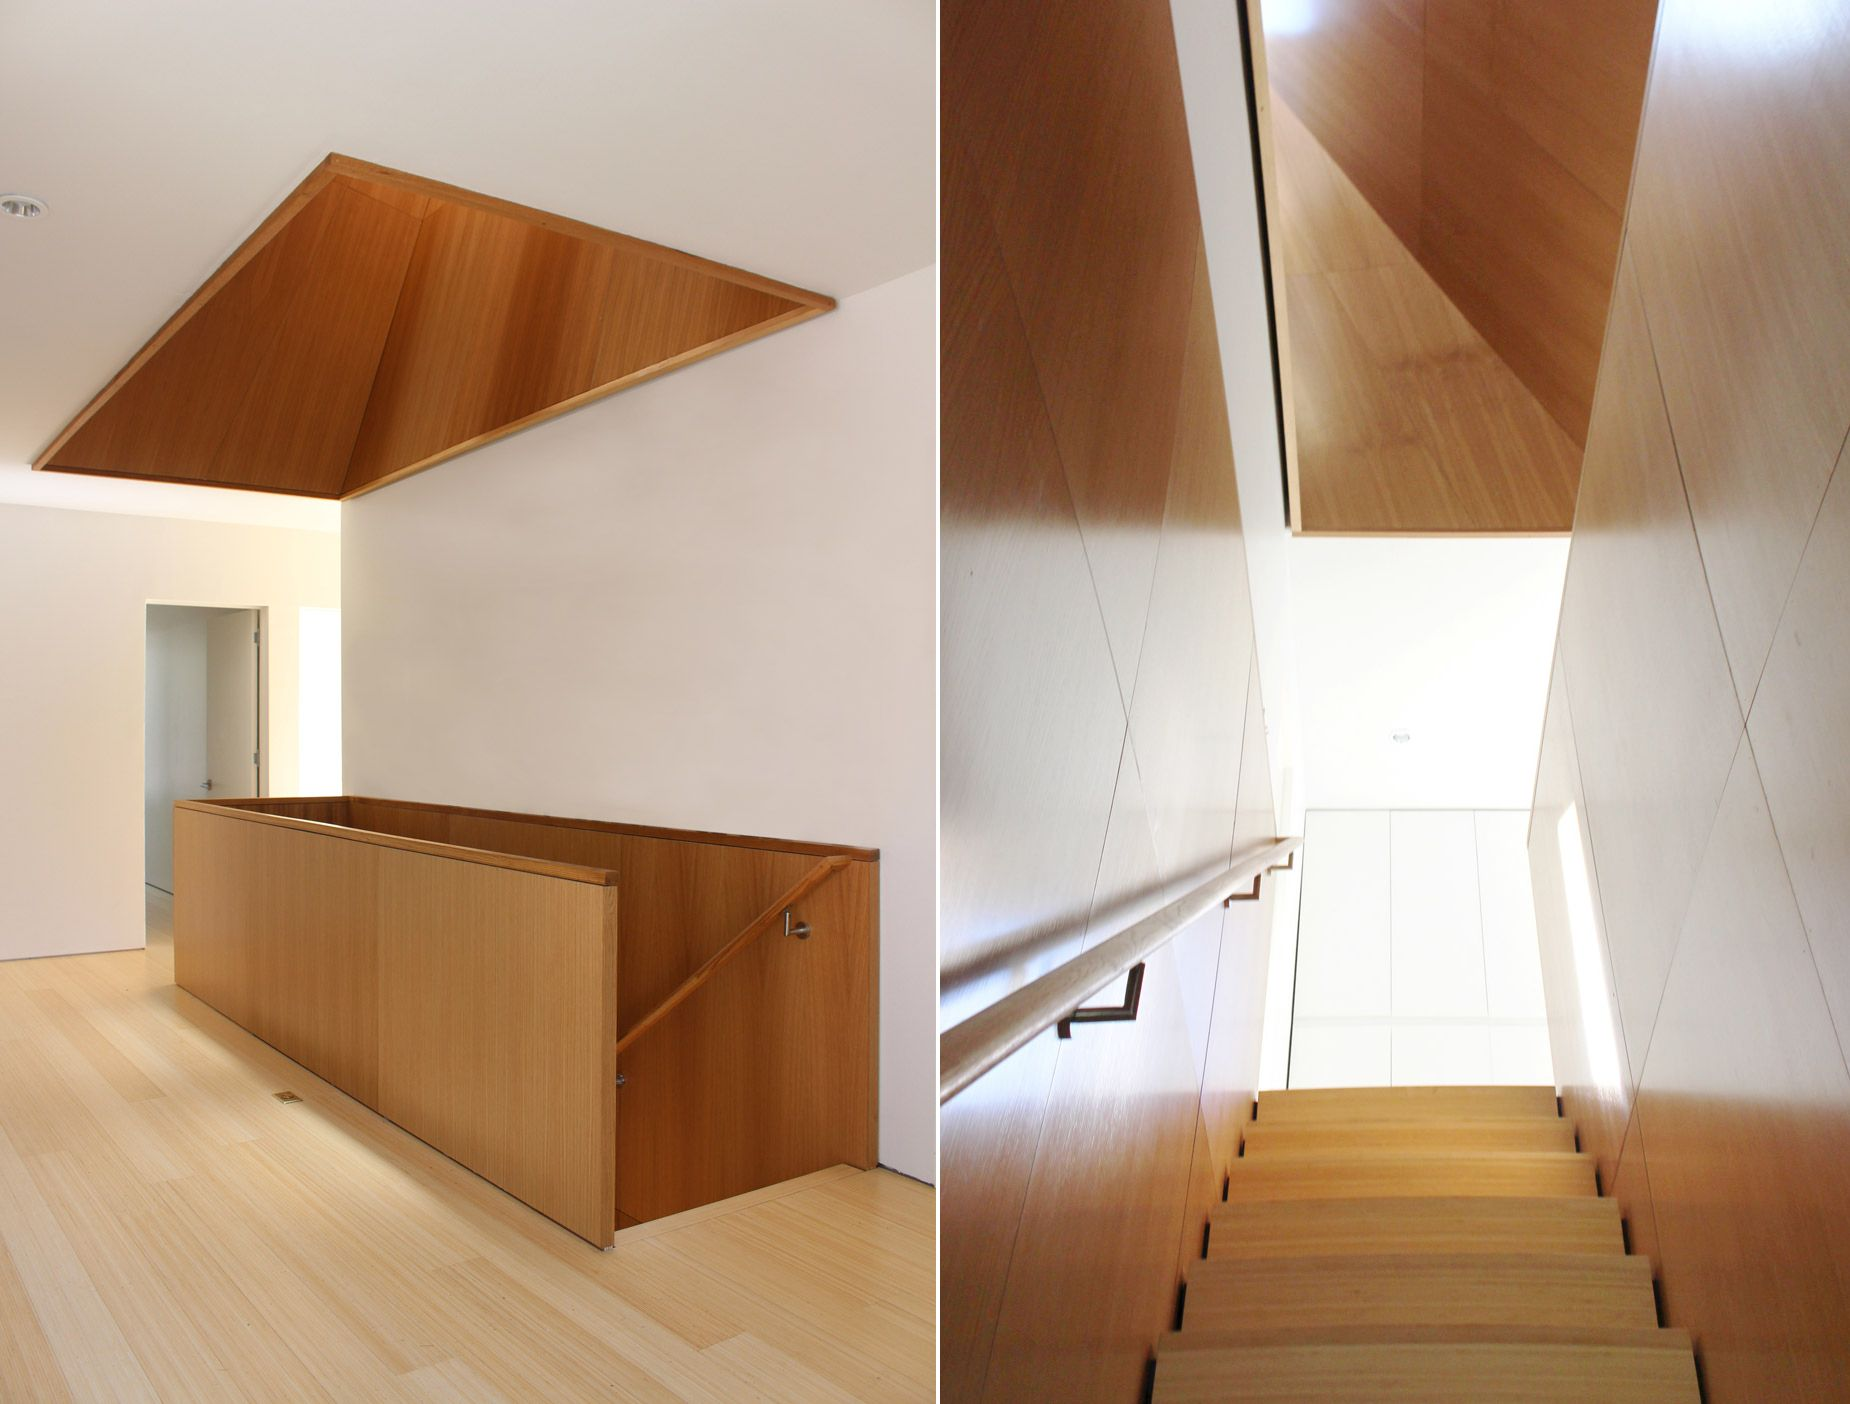 Architecture Design Small House small house - jim vlock building project - yale school of